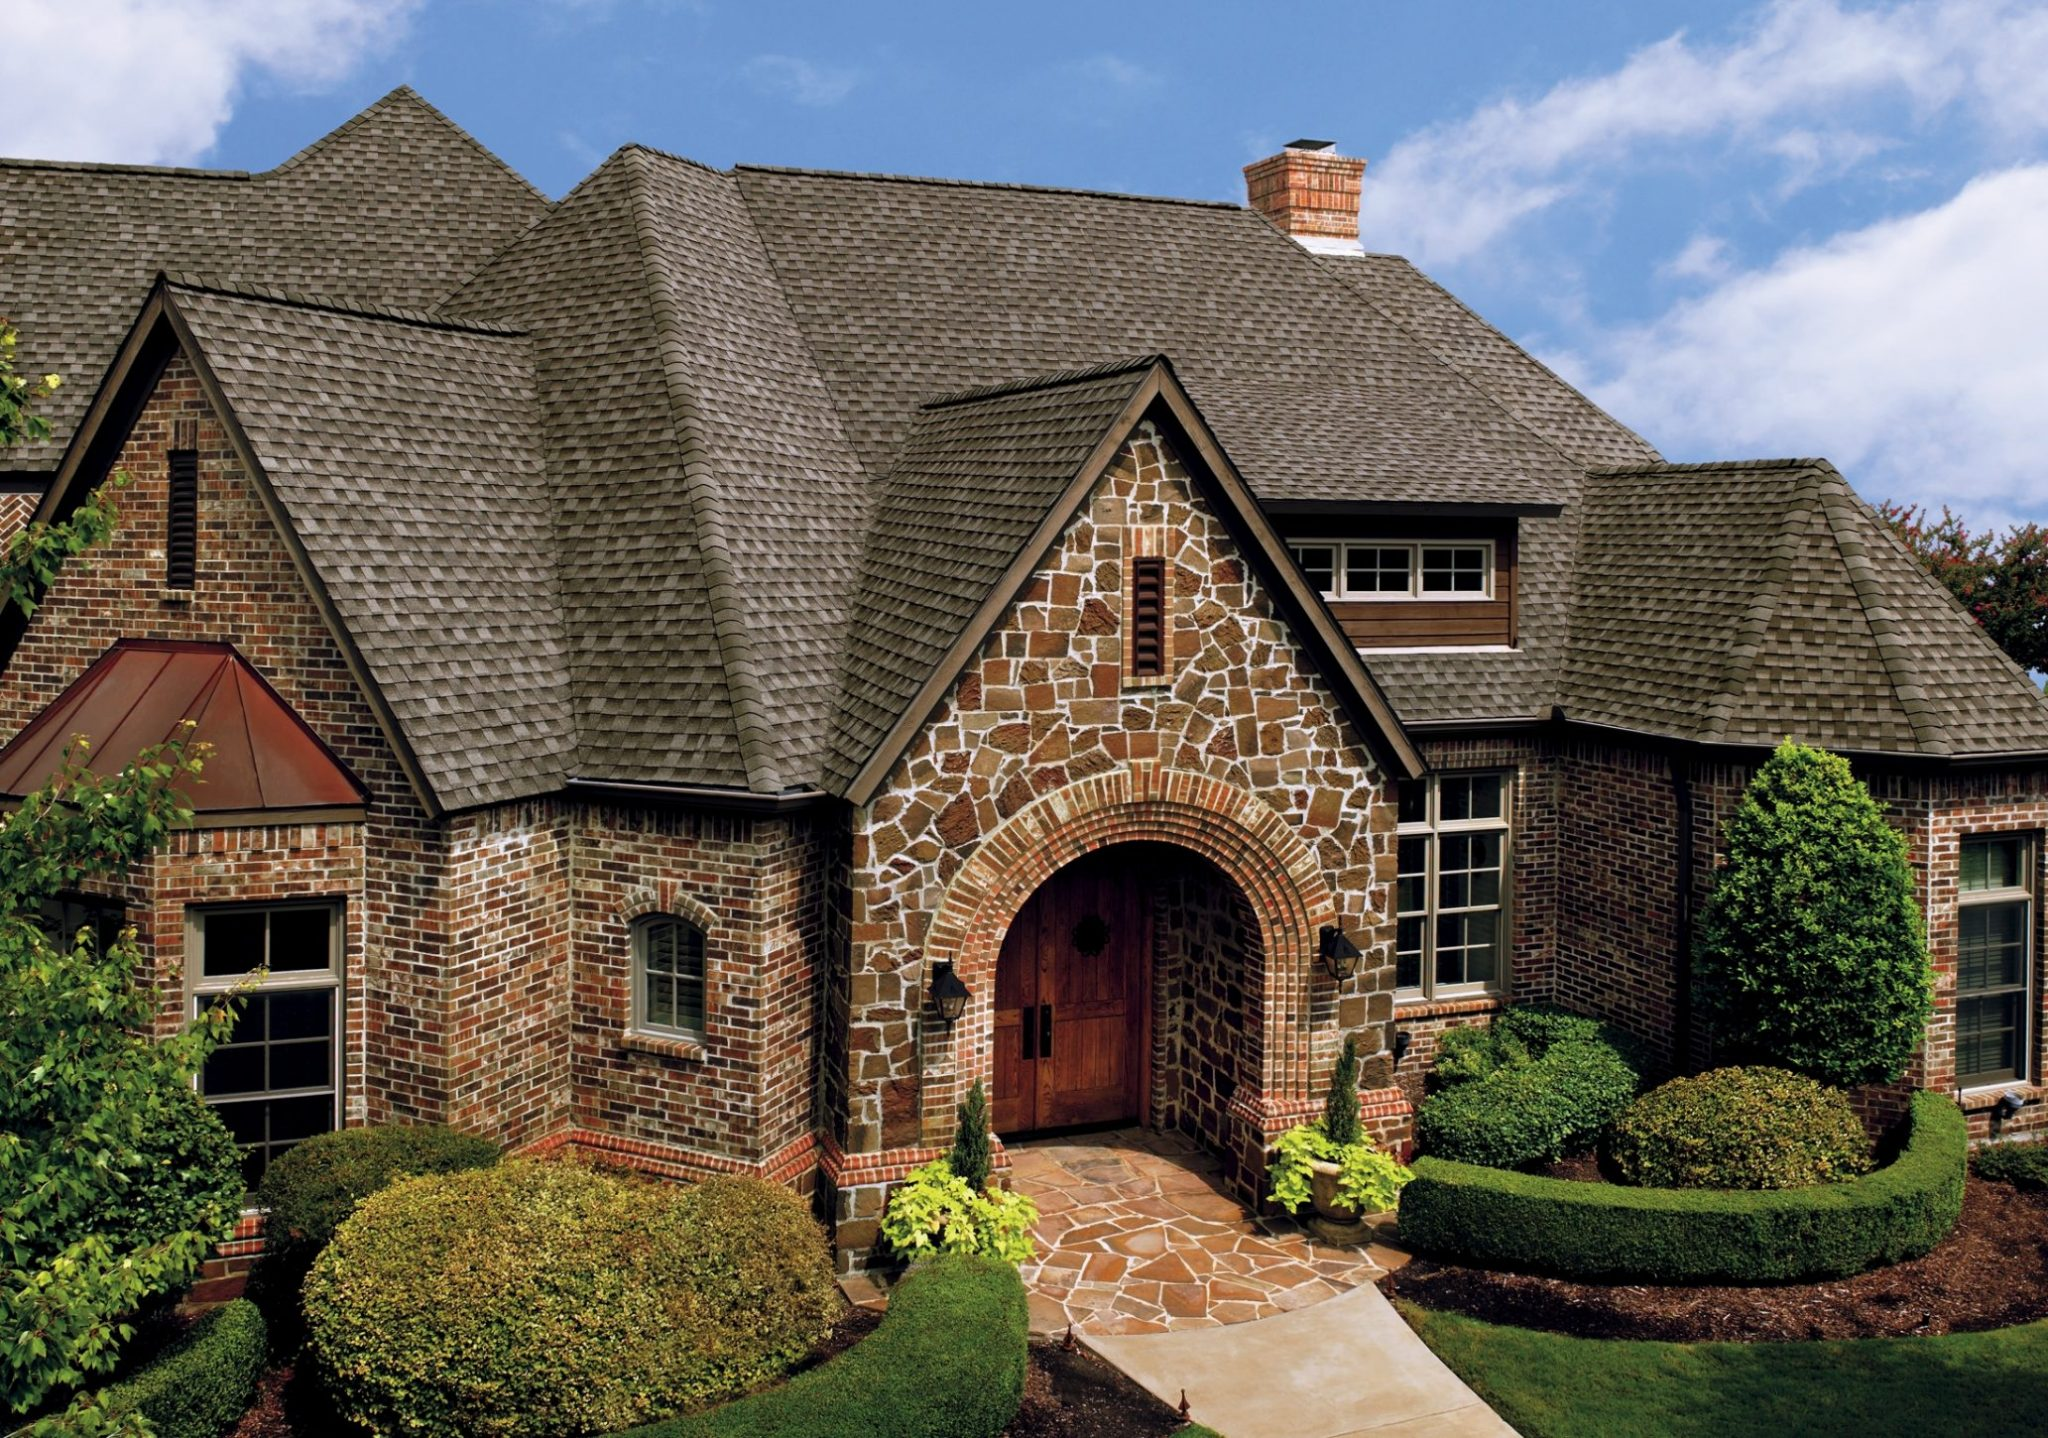 Timberline HD Asphalt Shingles in Weathered Wood colour on Large Brick Cottage Style House